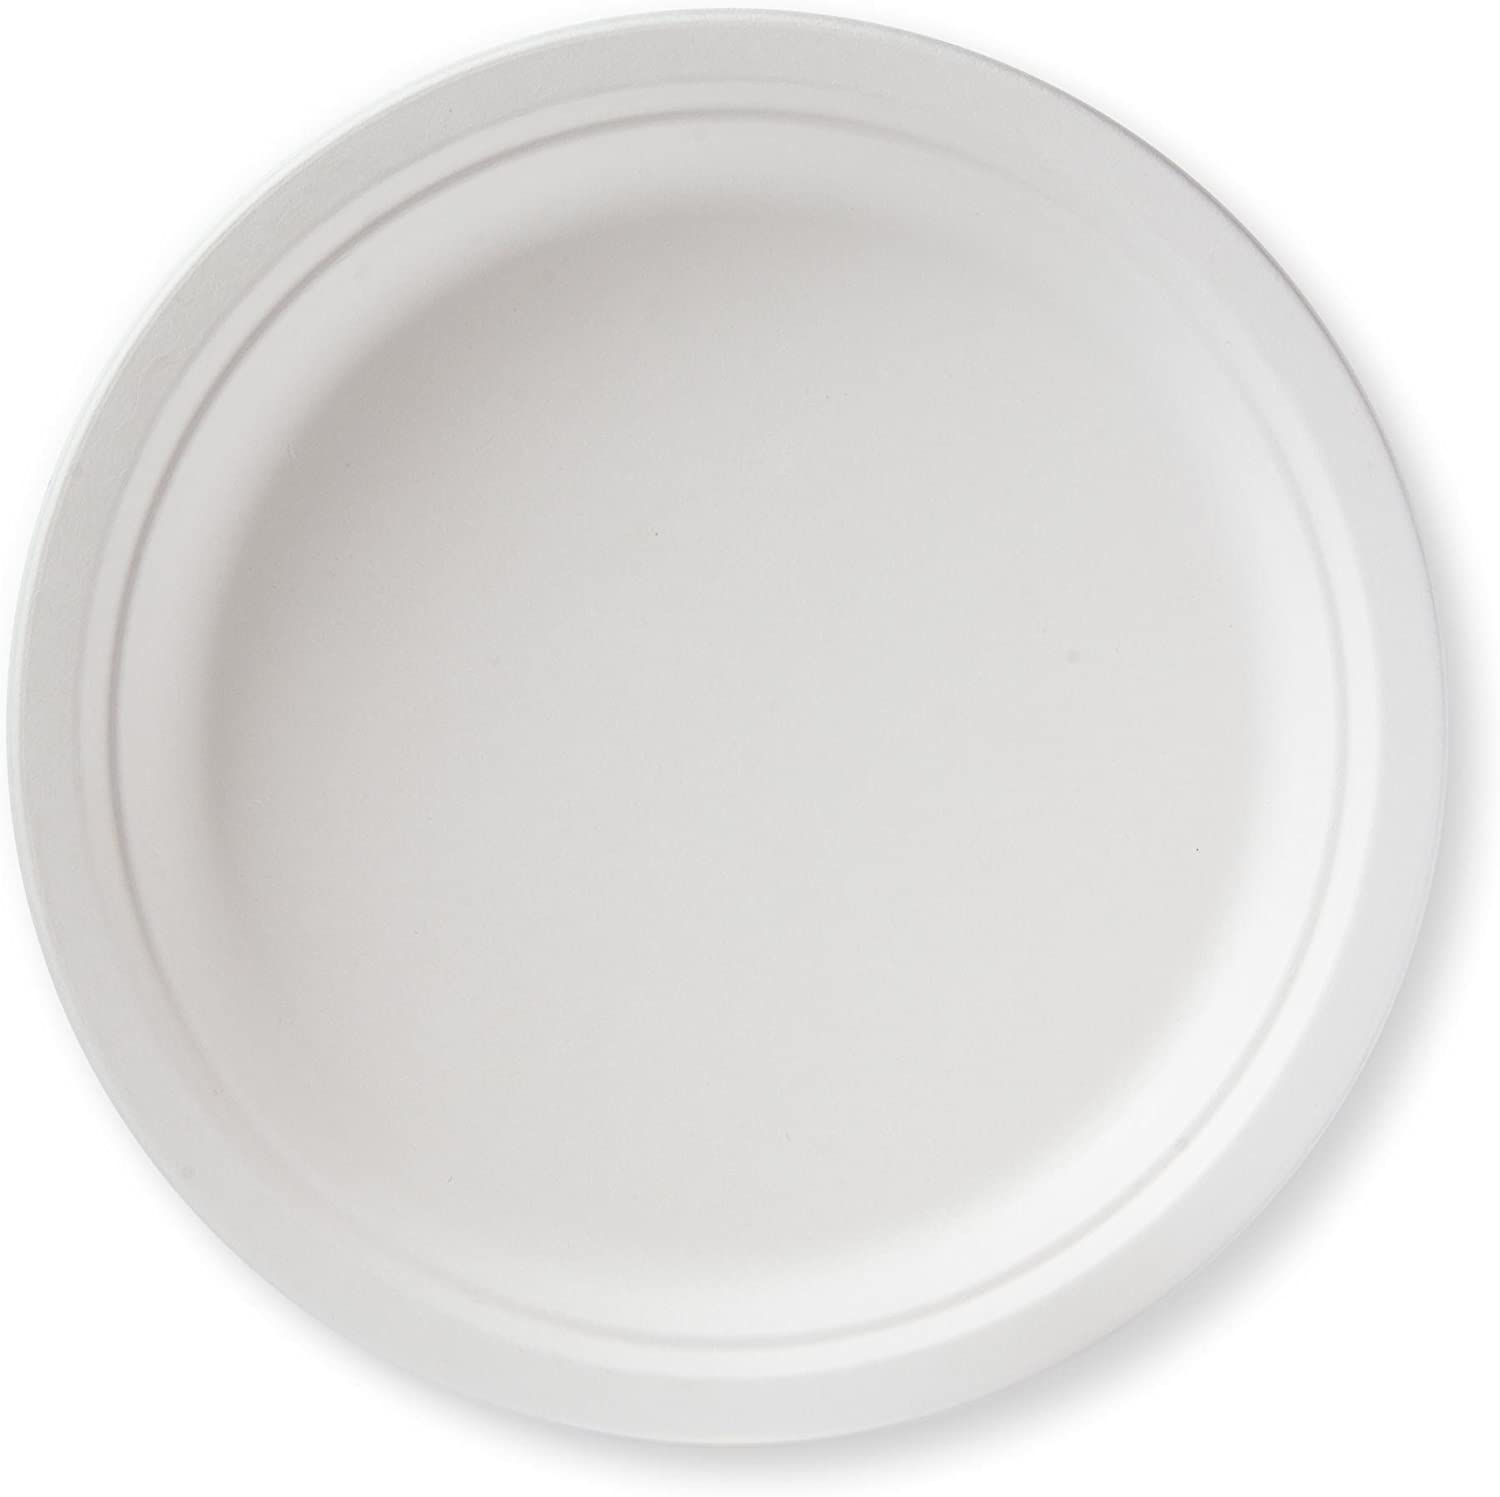 """Susty Party Supplies BP-10-50CT 50 Count 100% Compostable Sugar Cane Heavy Duty Plate for Dinner, 10"""", White"""